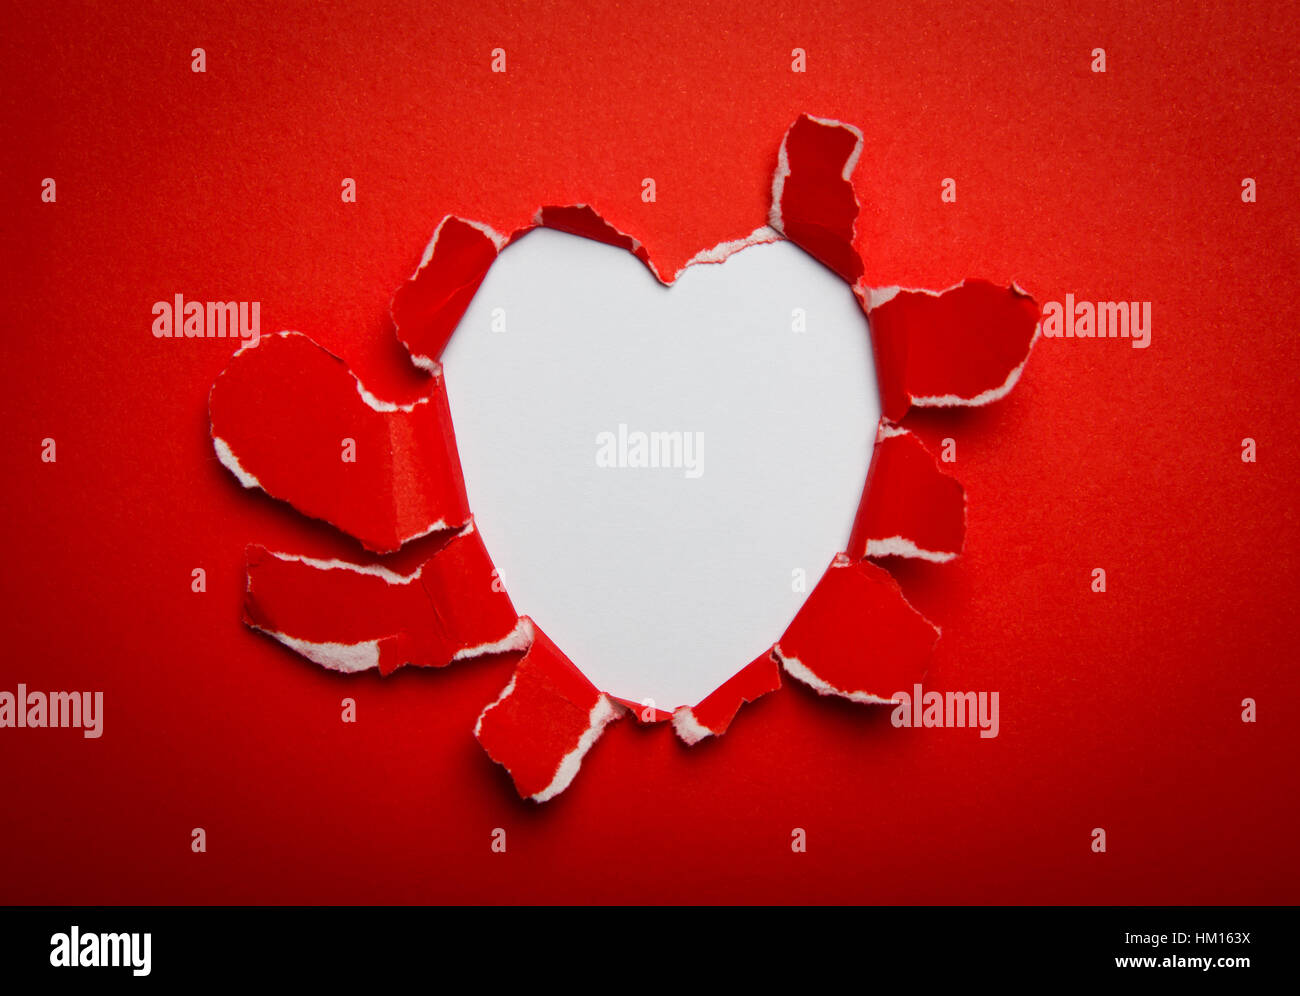 Heart Shape Hole Through Paper Symbol For Valentines Day With Stock